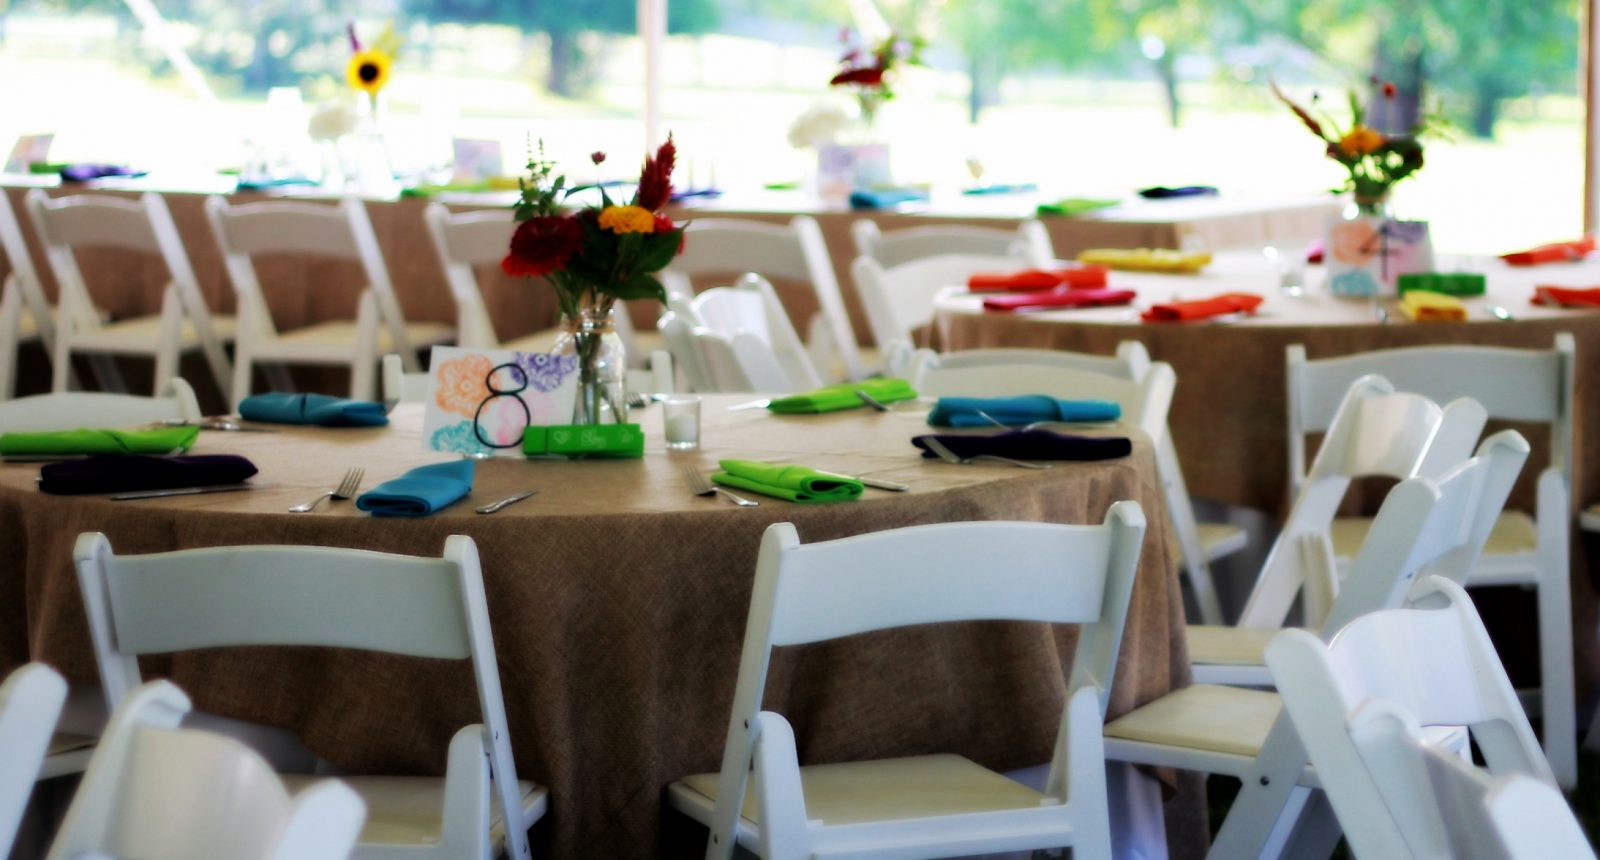 rentals weddings simply elegant linen fort dallas wedding pintuck linens worth table